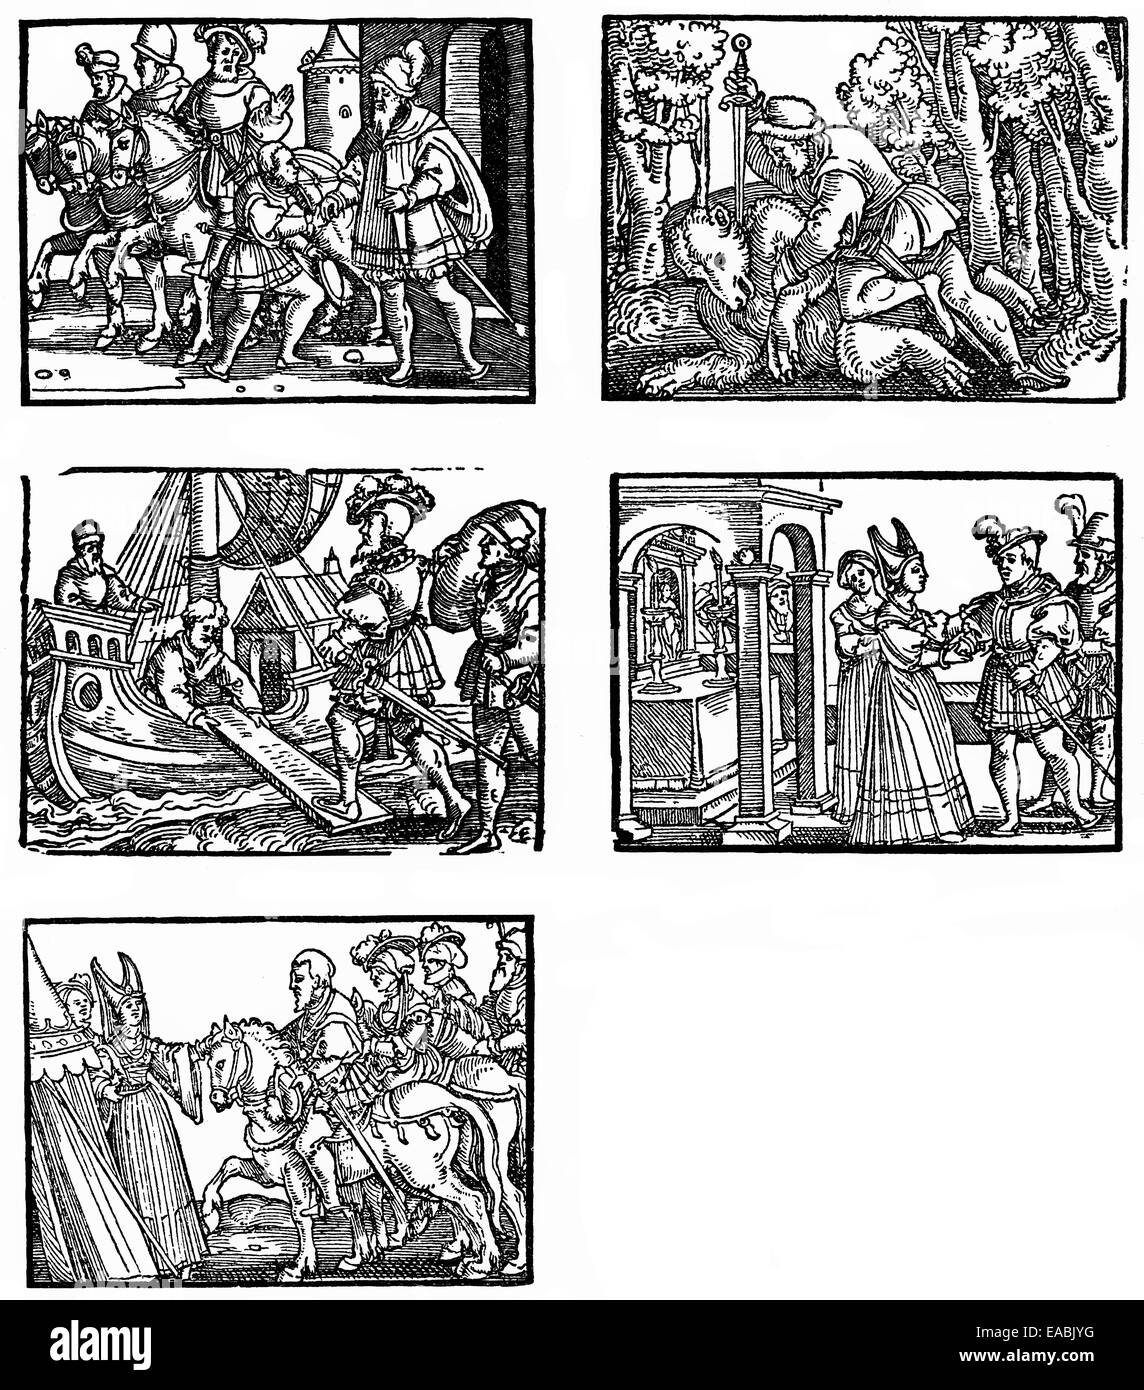 woodcuts from 1480 and 1490 - 1552, by Hans Brosamer, German painter, copperplate engraver and print cutter, printed - Stock Image